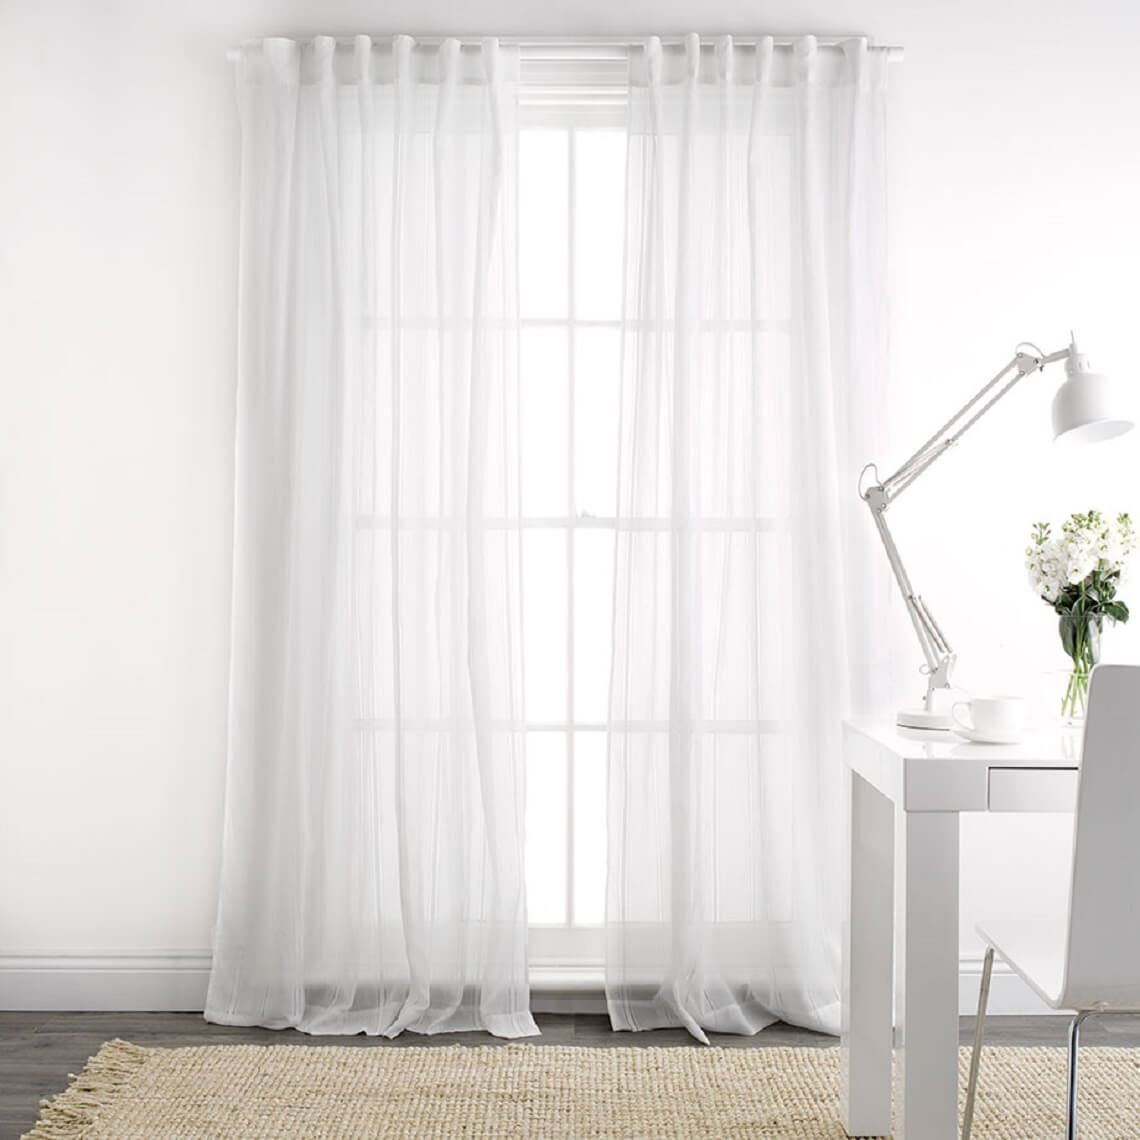 Elisa Sheer Concealed Tab Curtain Size W 140cm x D 1cm x H 230cm in White Polyester Freedom by Freedom, a Curtains for sale on Style Sourcebook